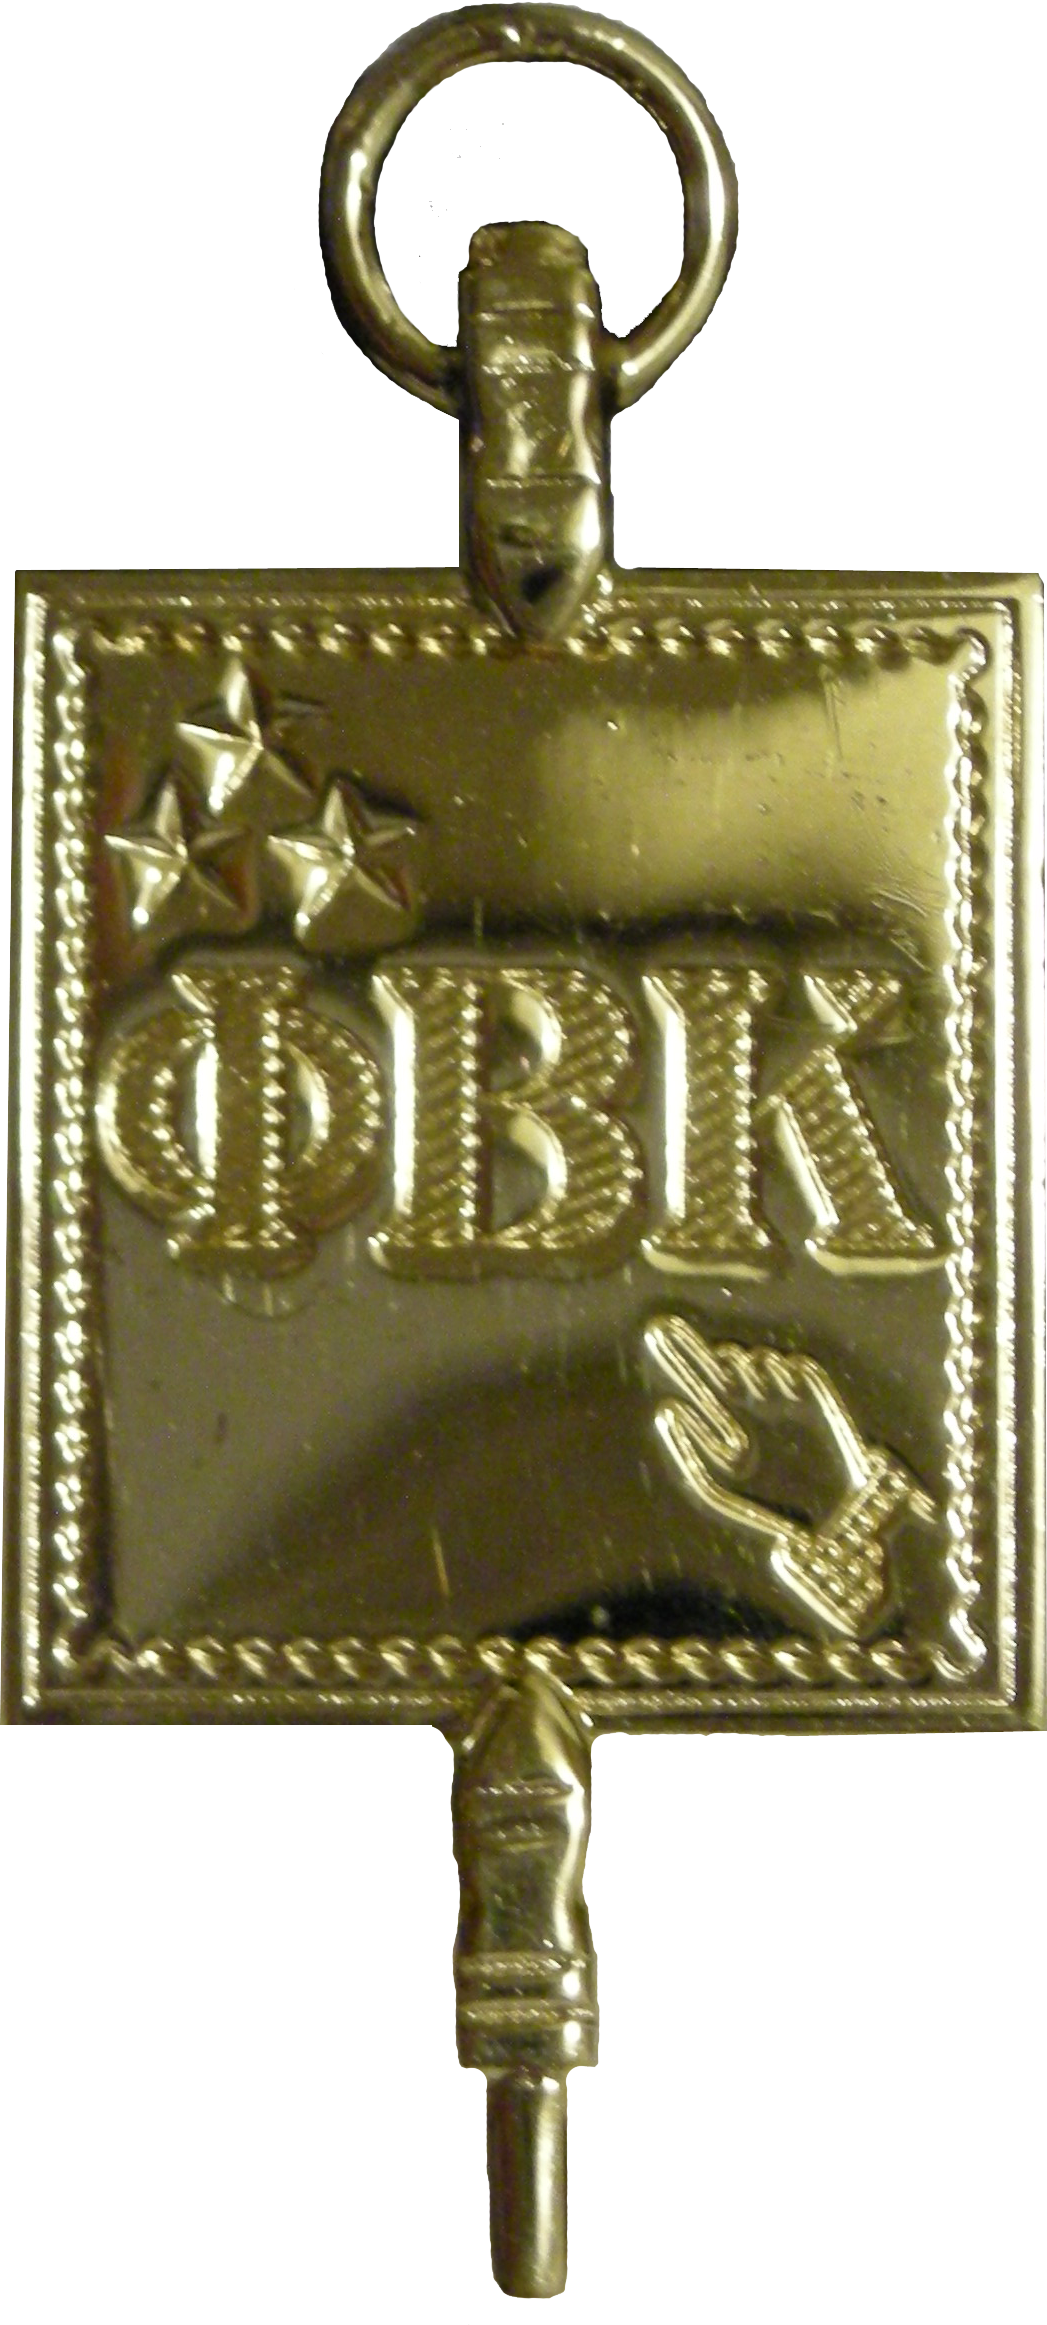 Phi beta kappa wikipedia biocorpaavc Images